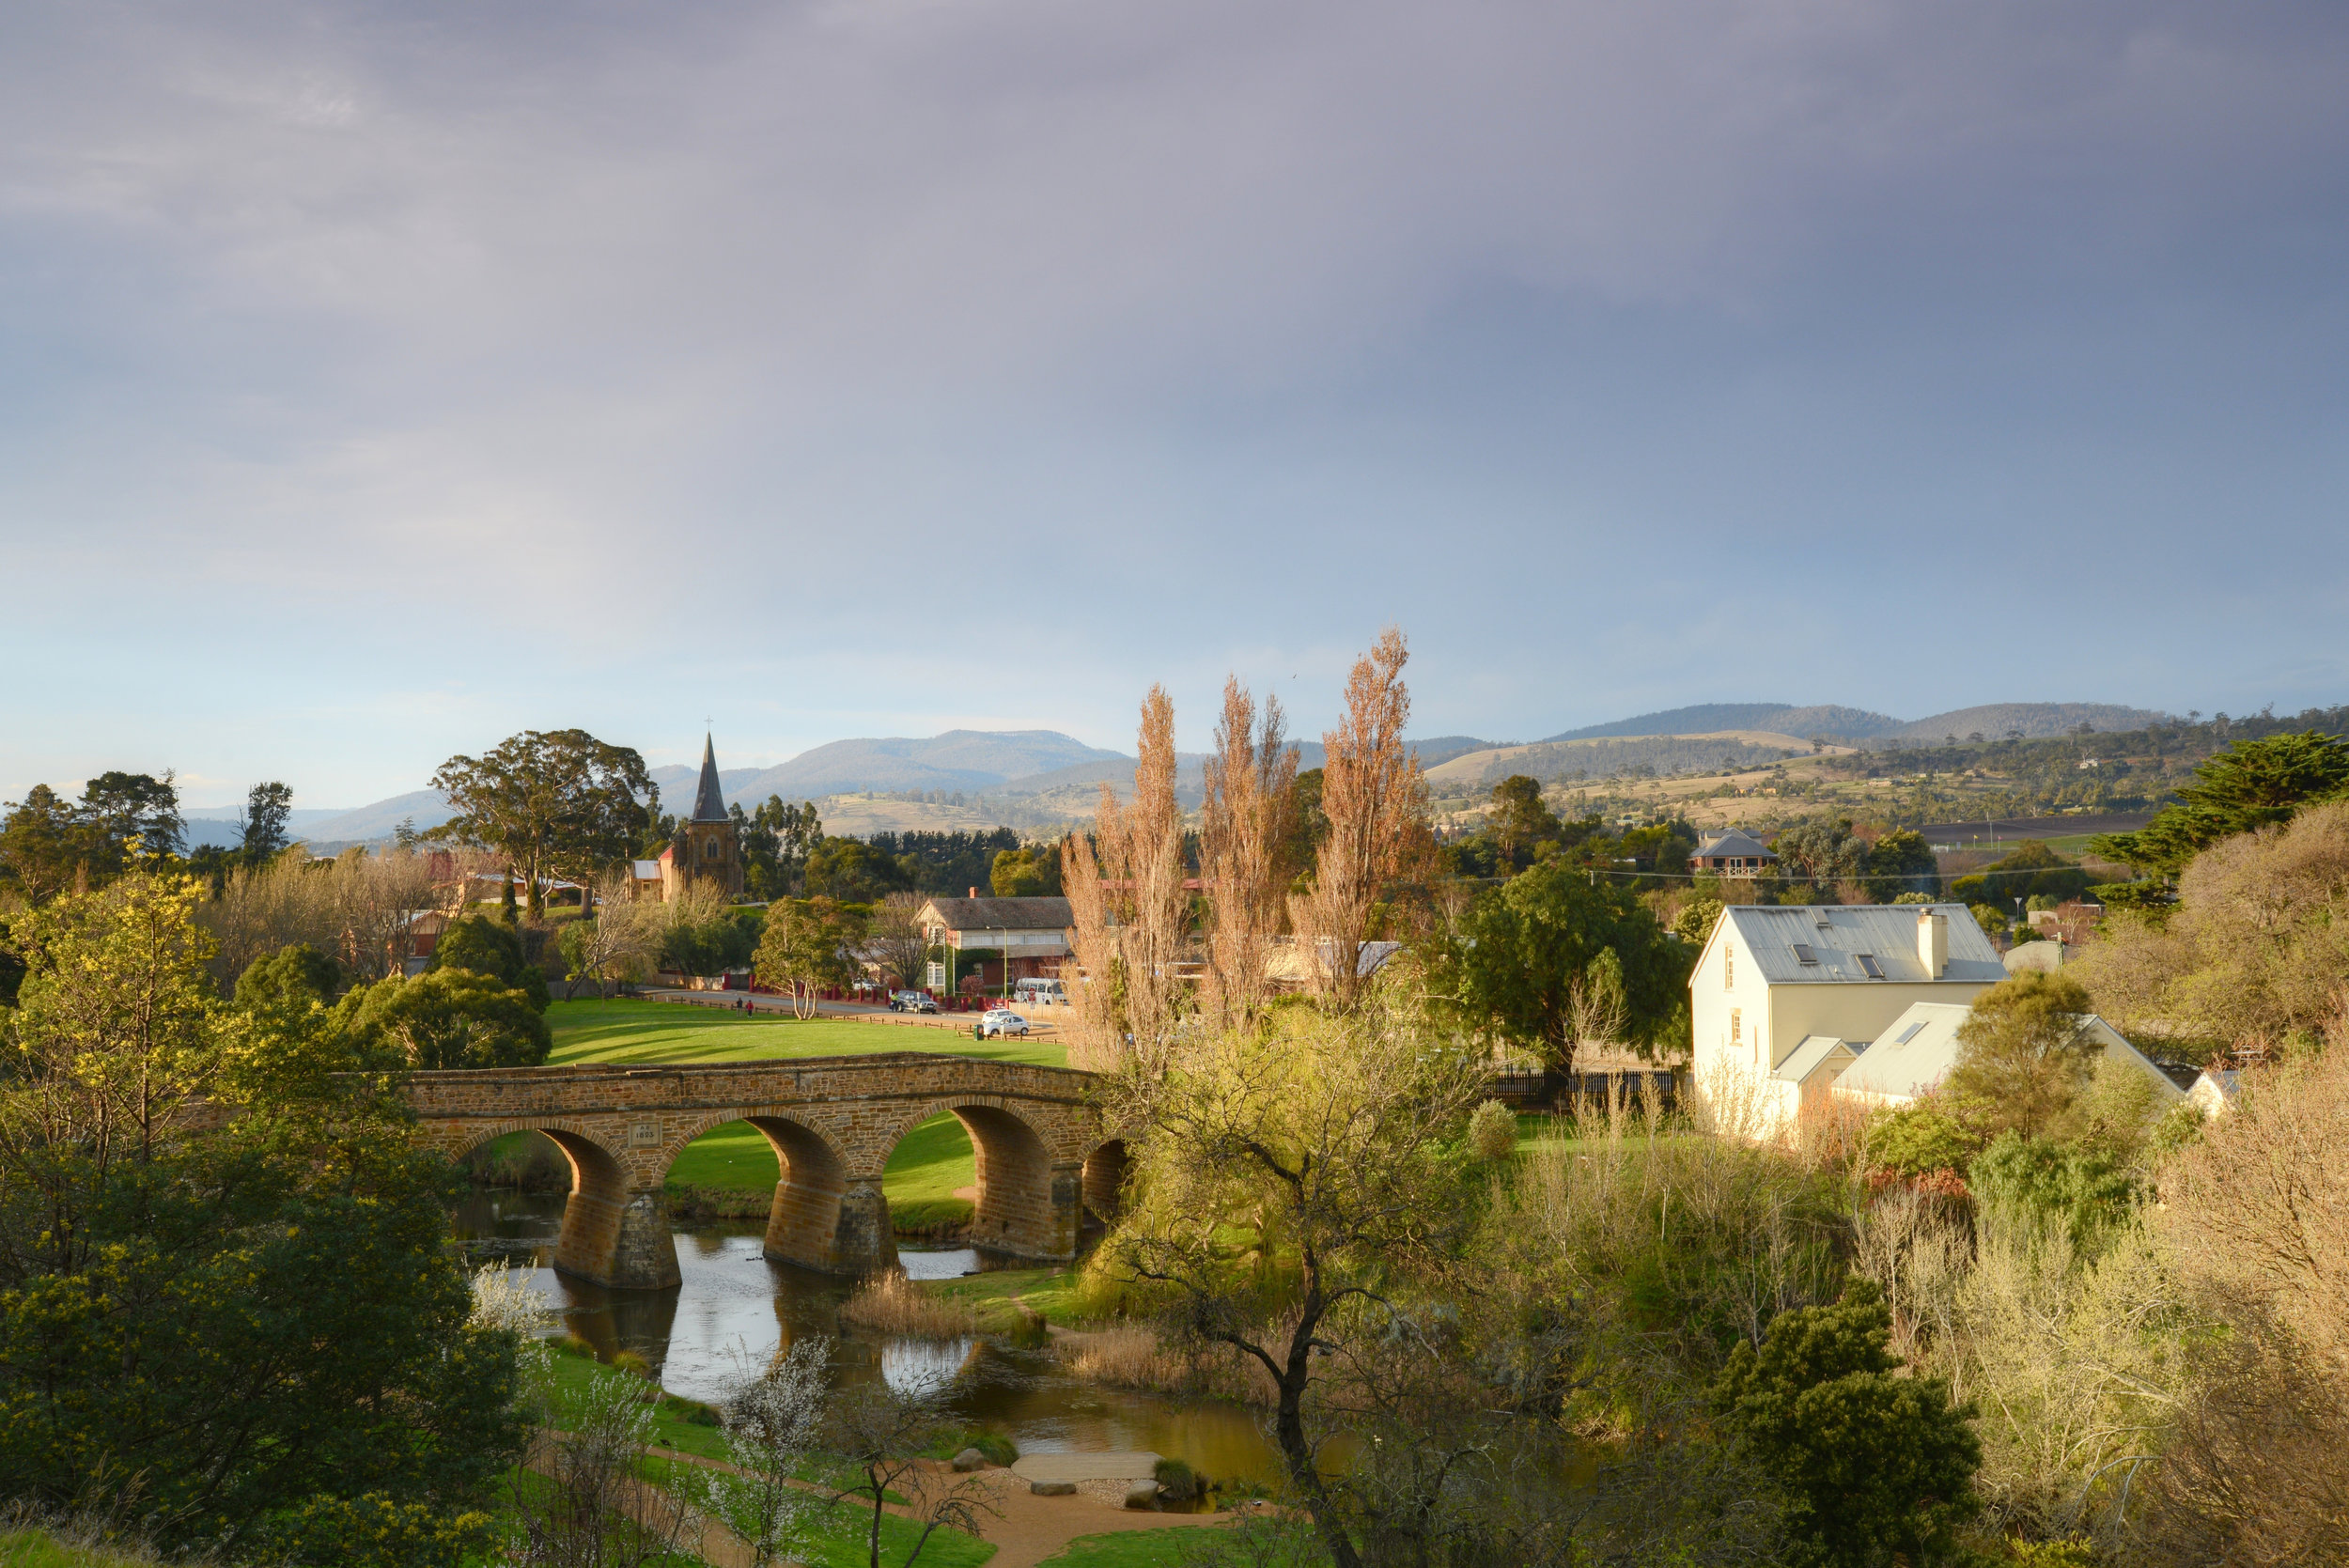 Richmond Bridge - Richmond Village. A fantastic colonial heritage area, with many buildings dating from the period & also some of the best preserved convict history in Tasmania